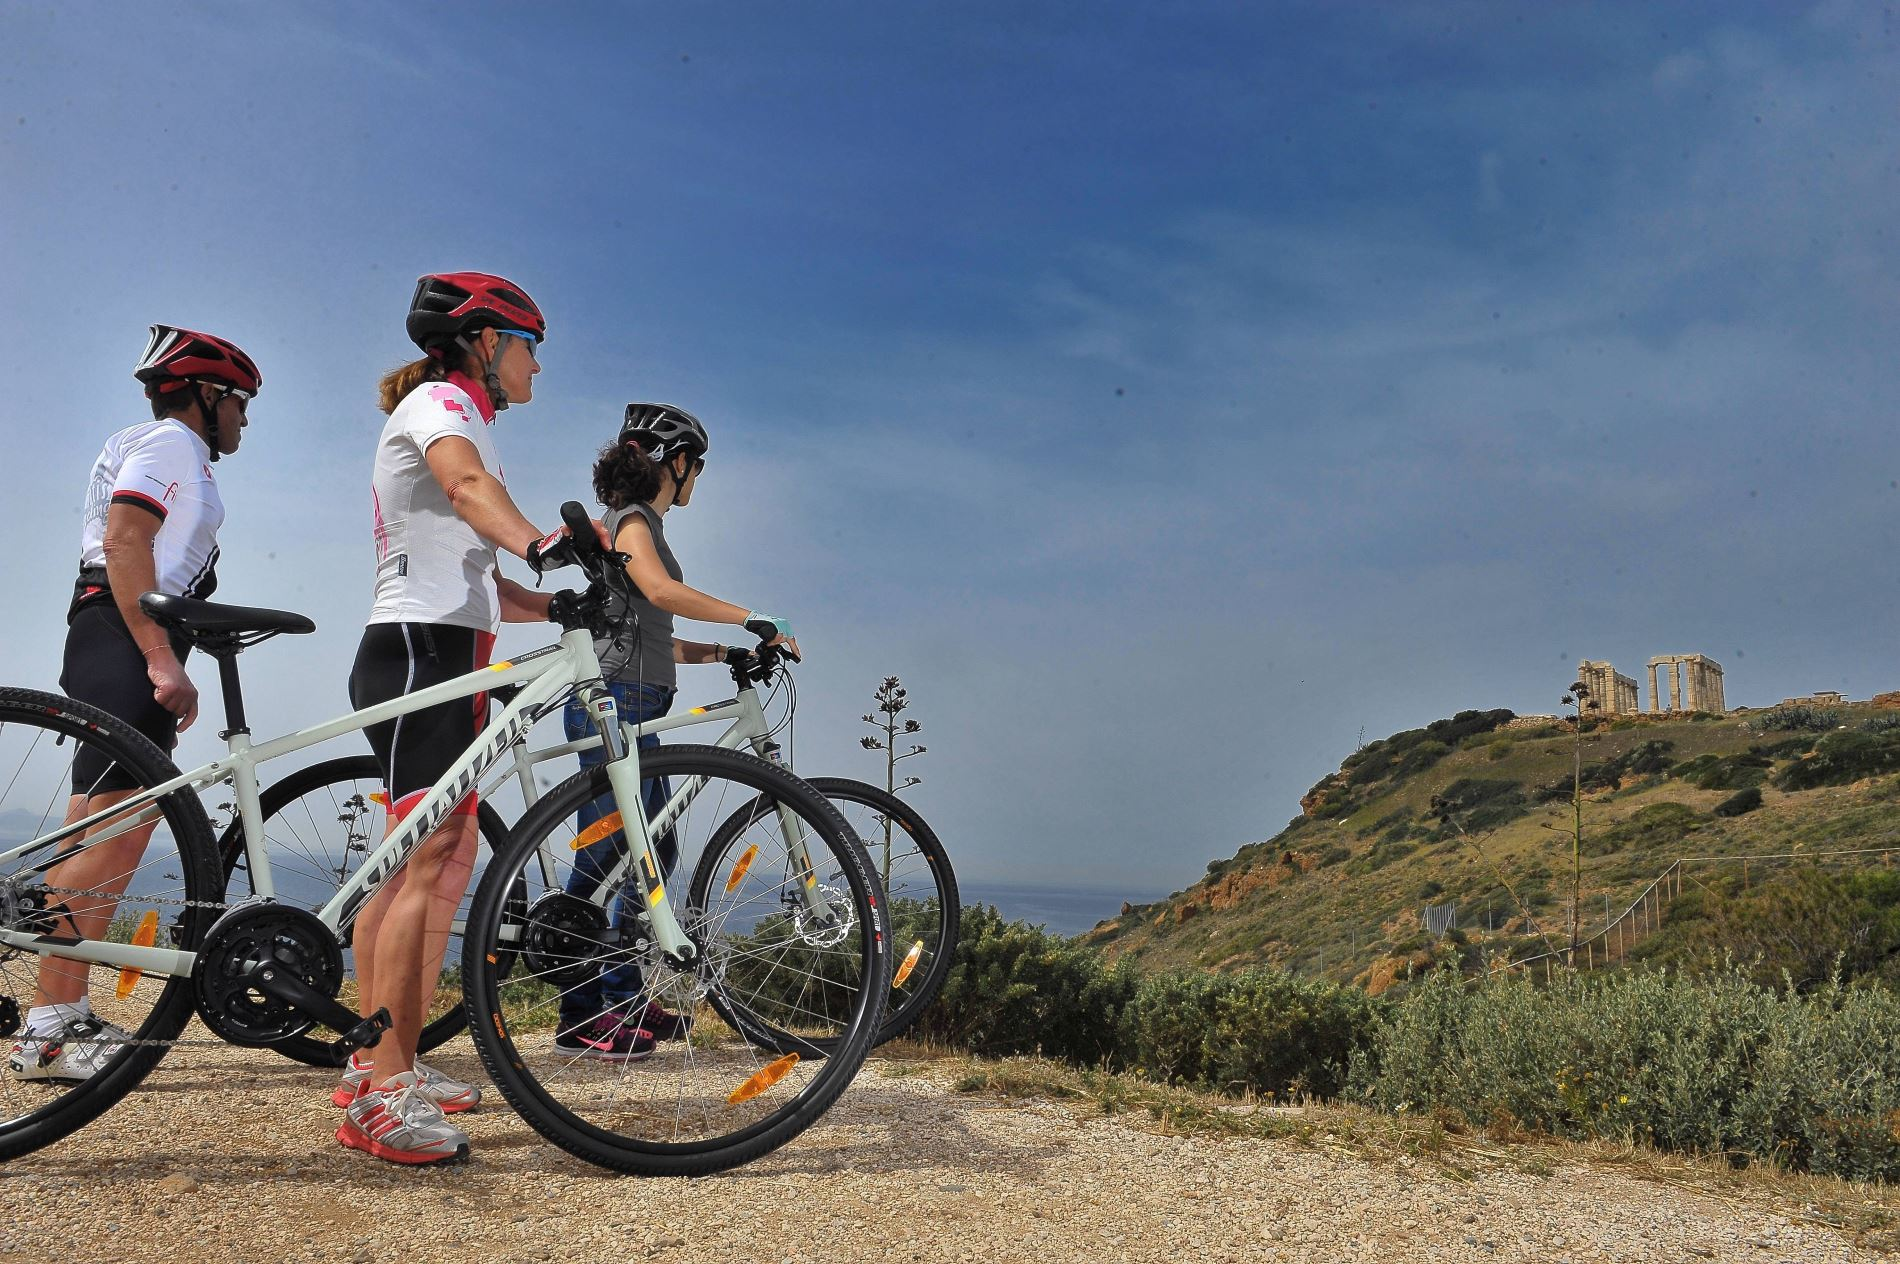 """Poseidon Ride"" Cape Sounio Bike Tour. 6 hours. 40 km"